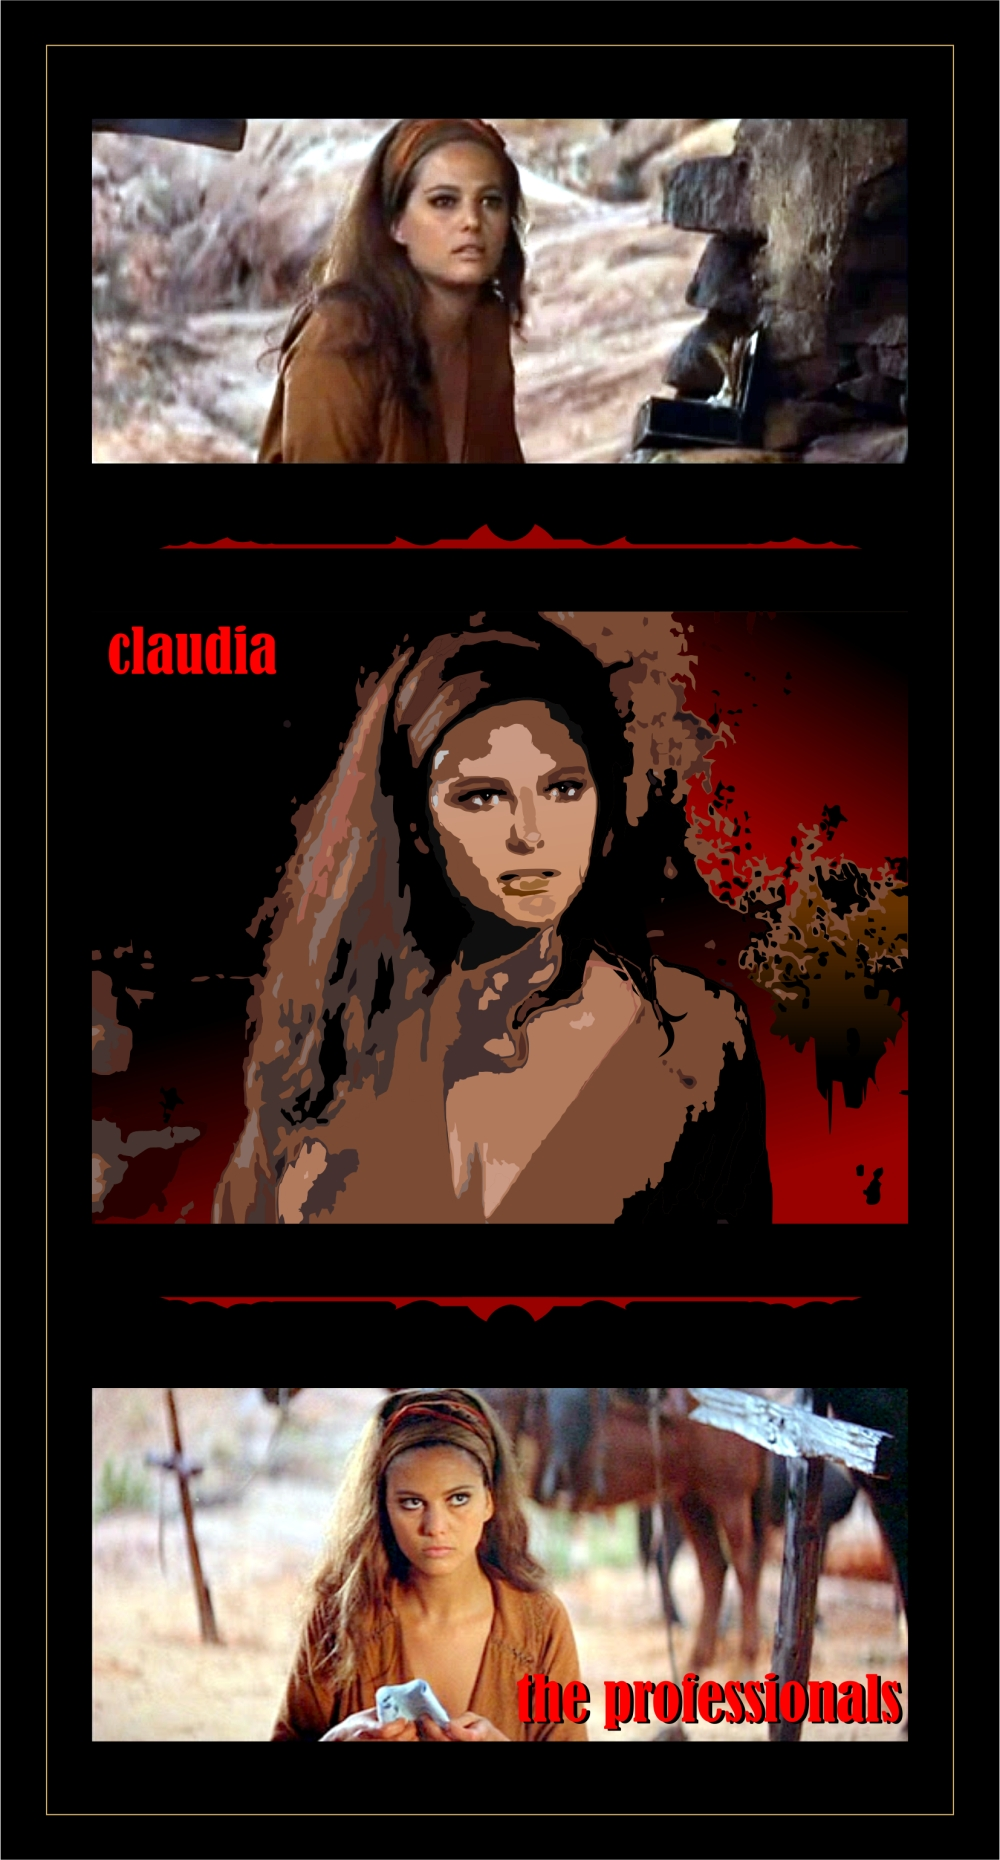 The Professionals claudia 2